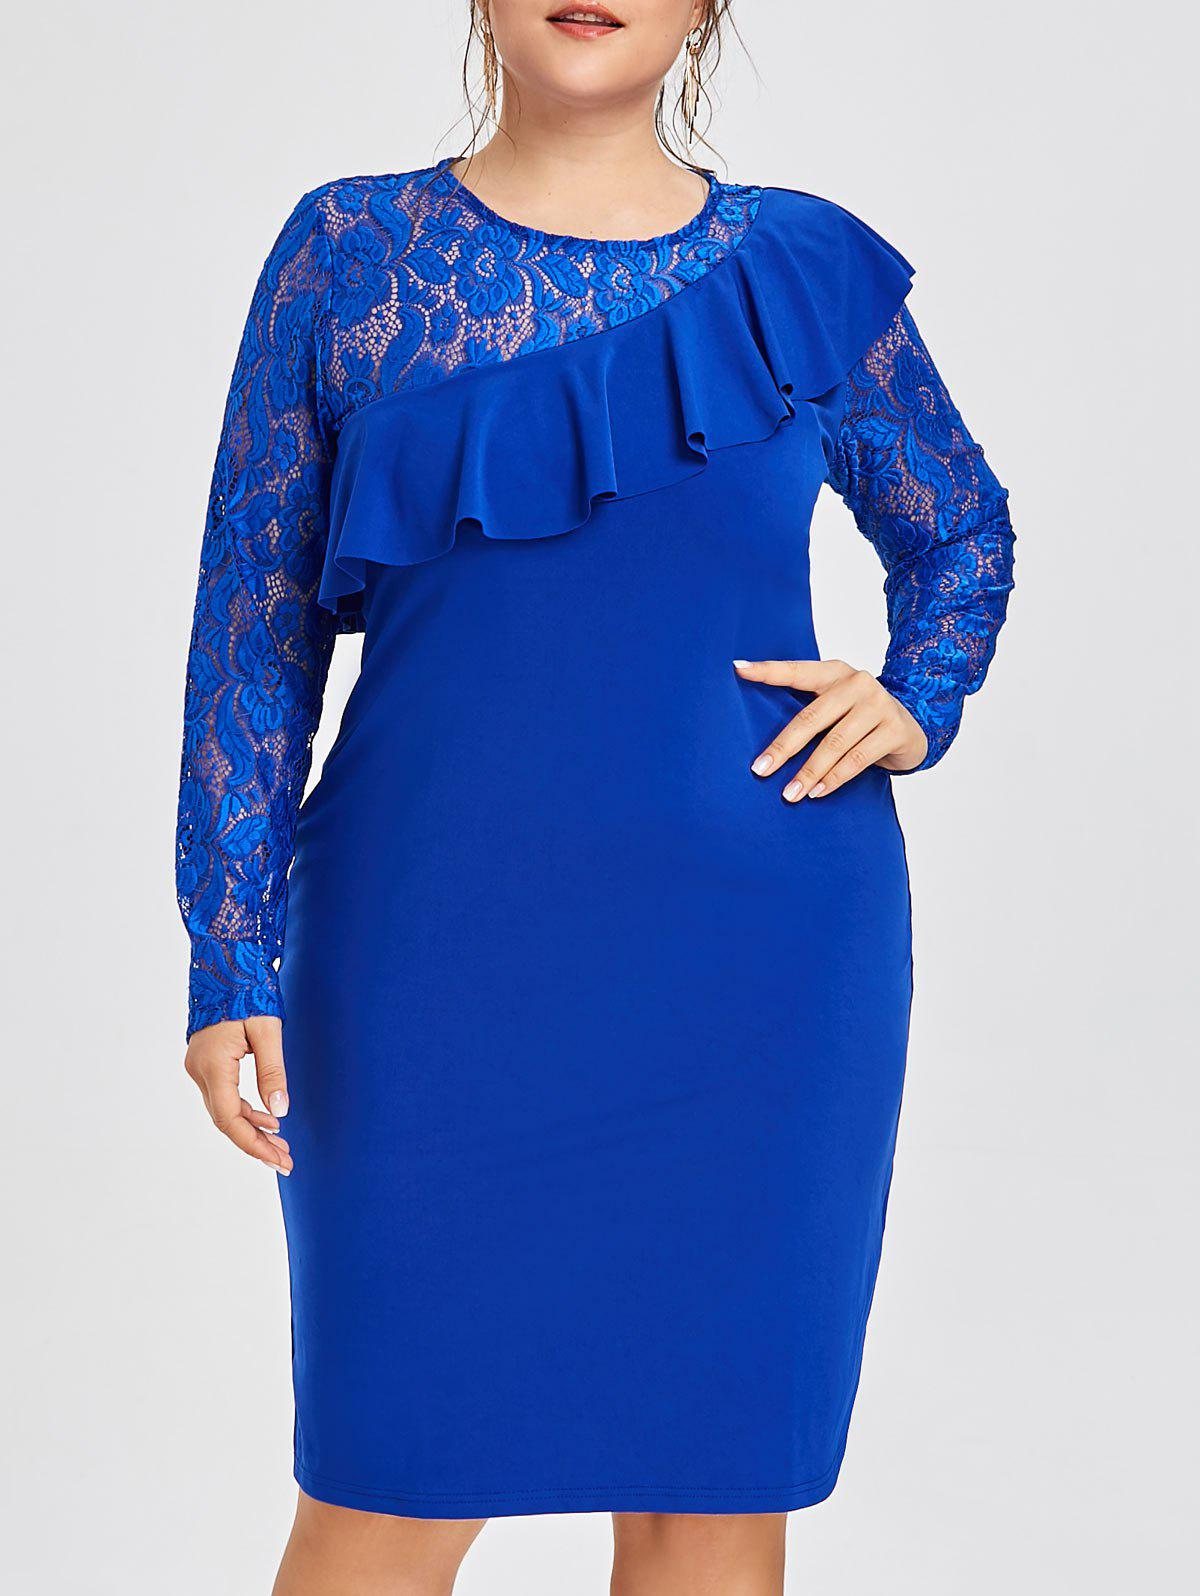 2019 Plus Size Ruffle Lace Insert Semi Formal Dress | Rosegal.com